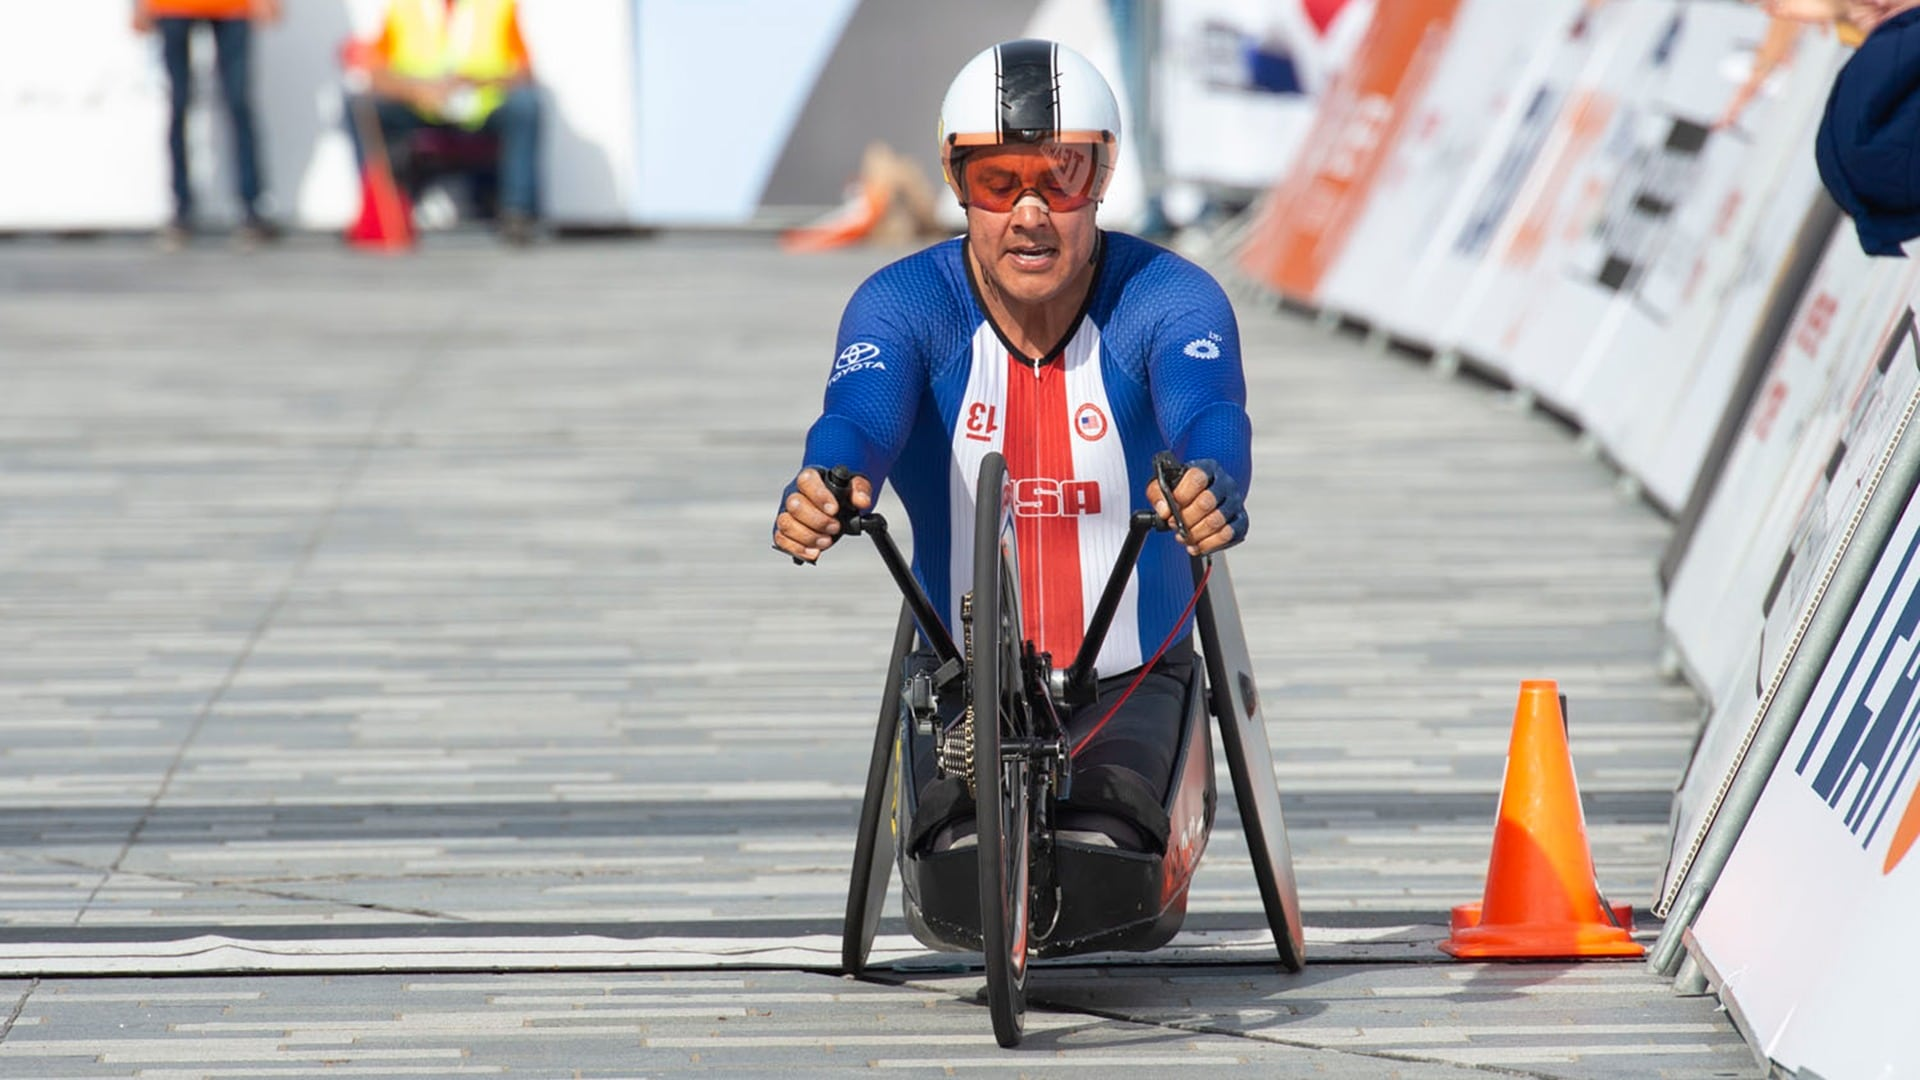 Three-time Paralympic handcyclist Oz Sanchez